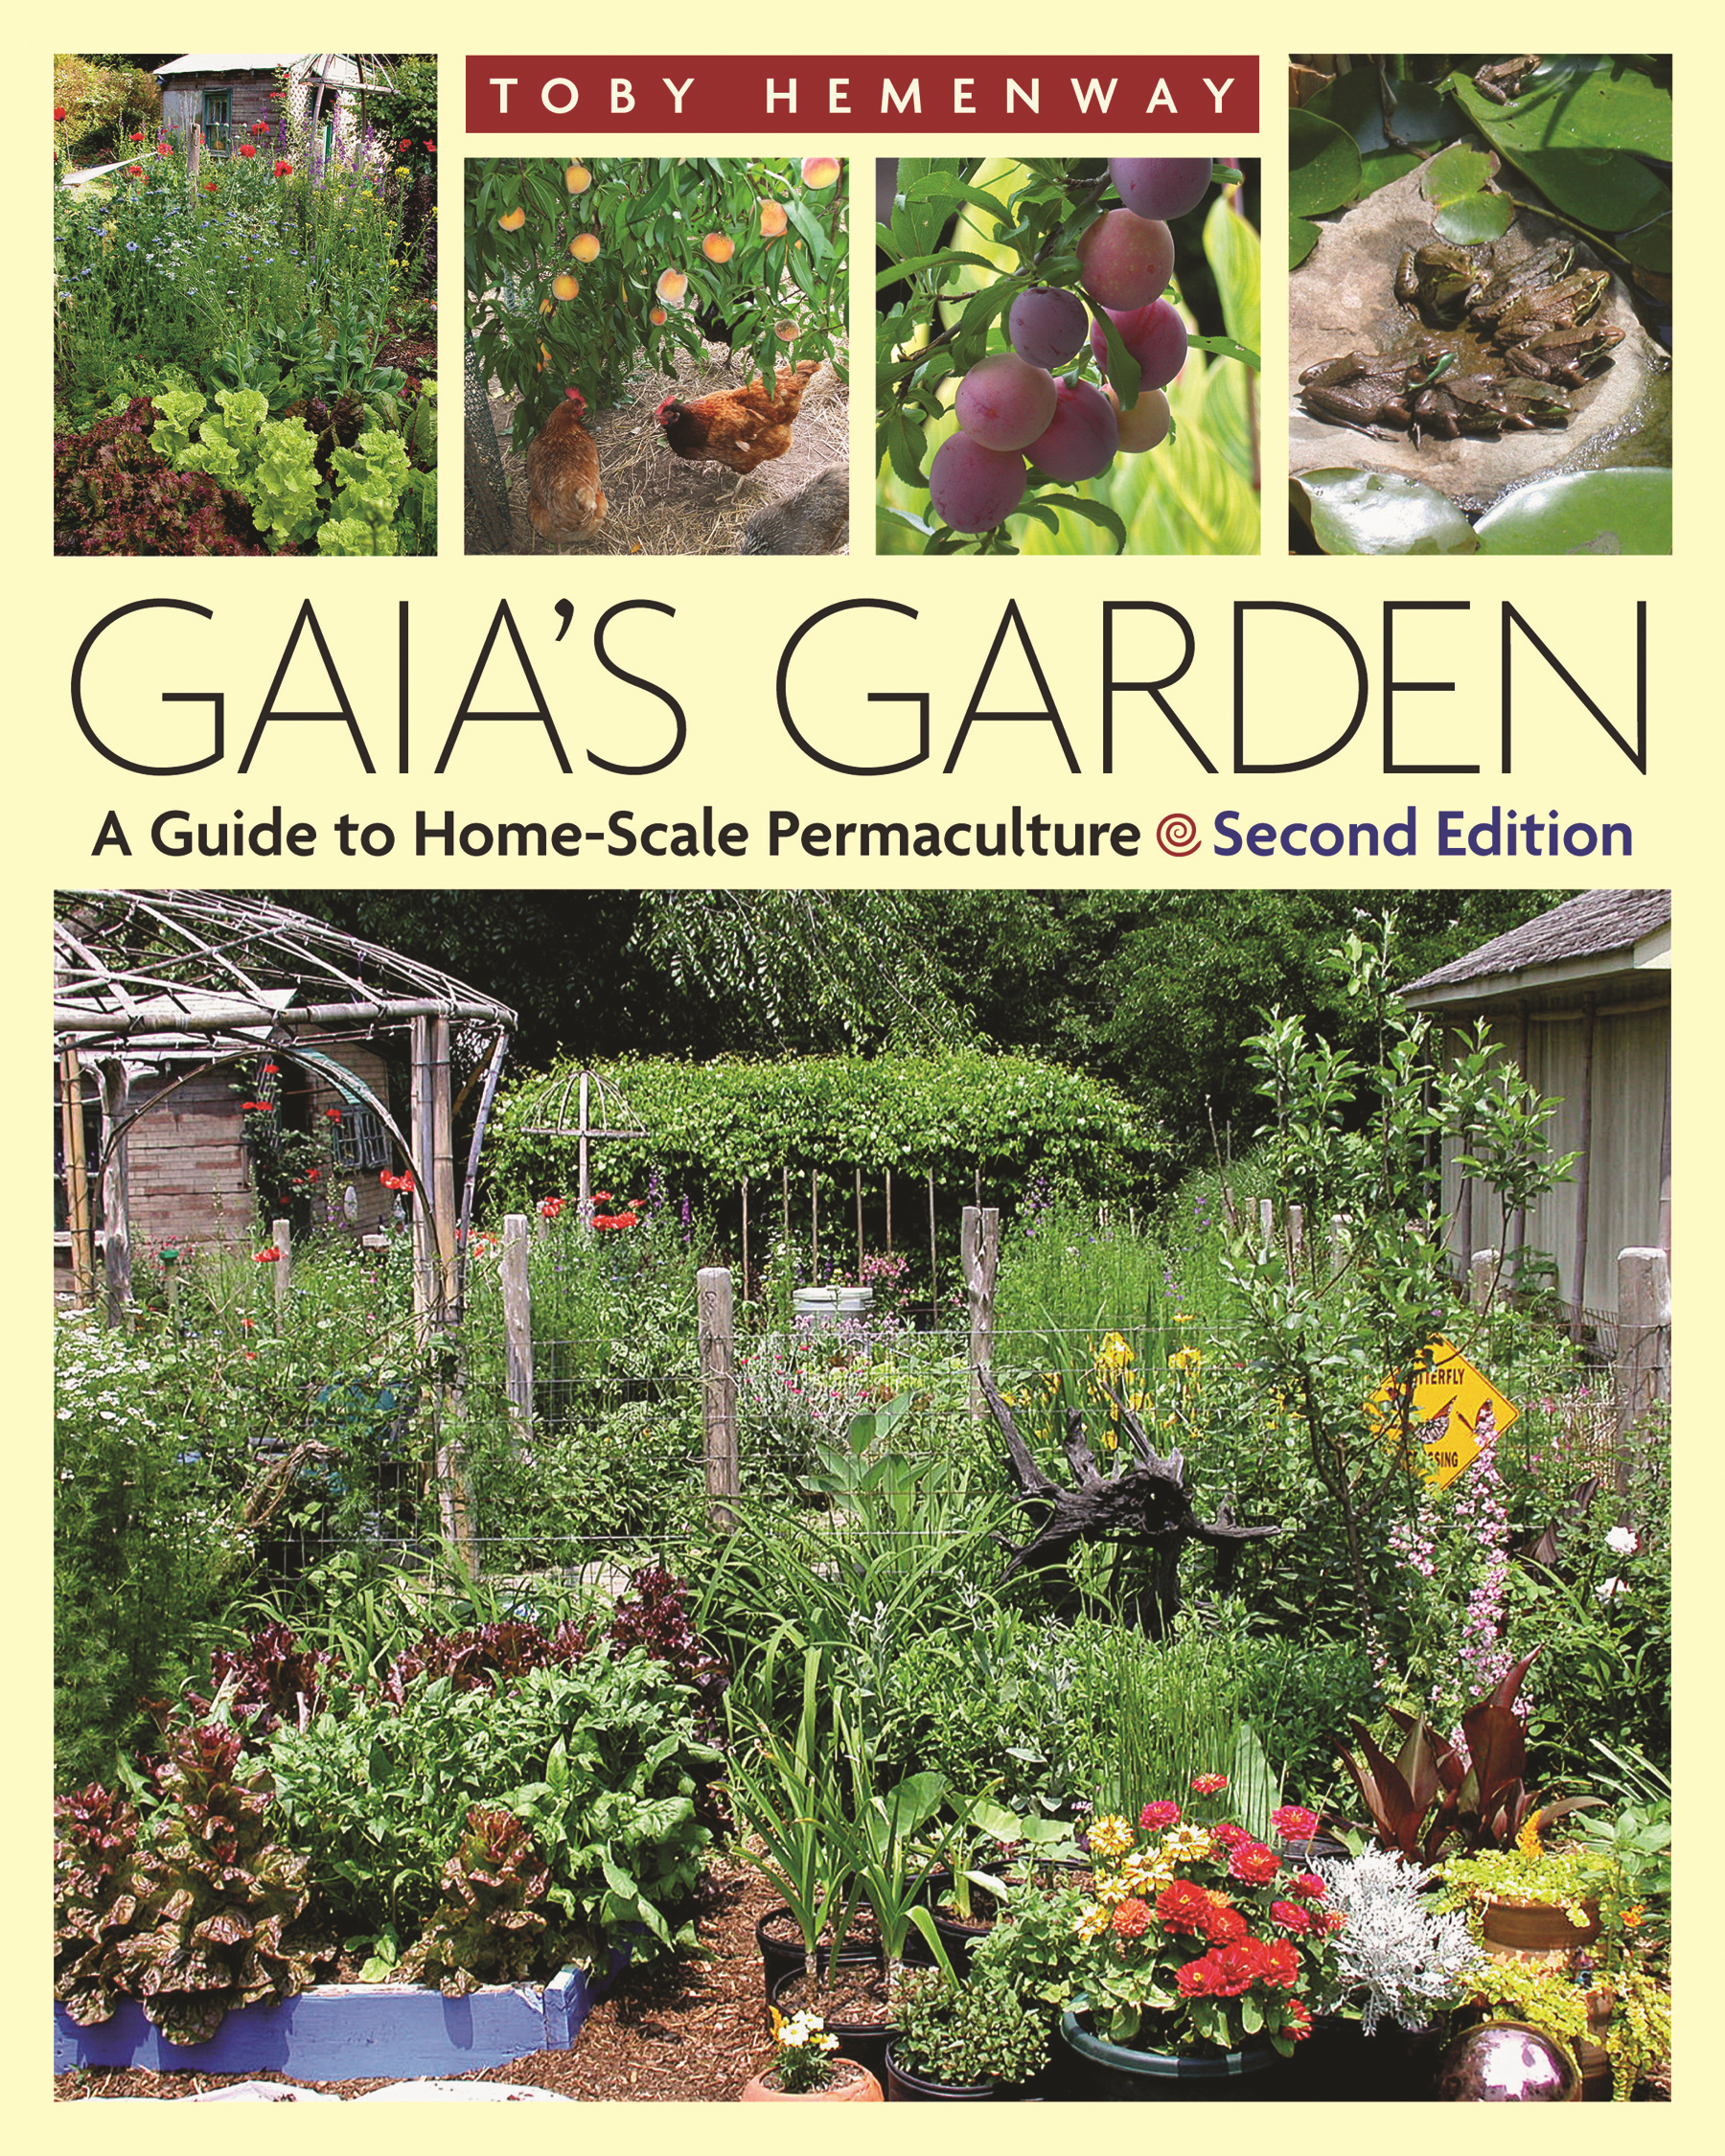 Gaia's Garden, Second Edition: A Guide To Home-Scale Permaculture By: Toby Hemenway